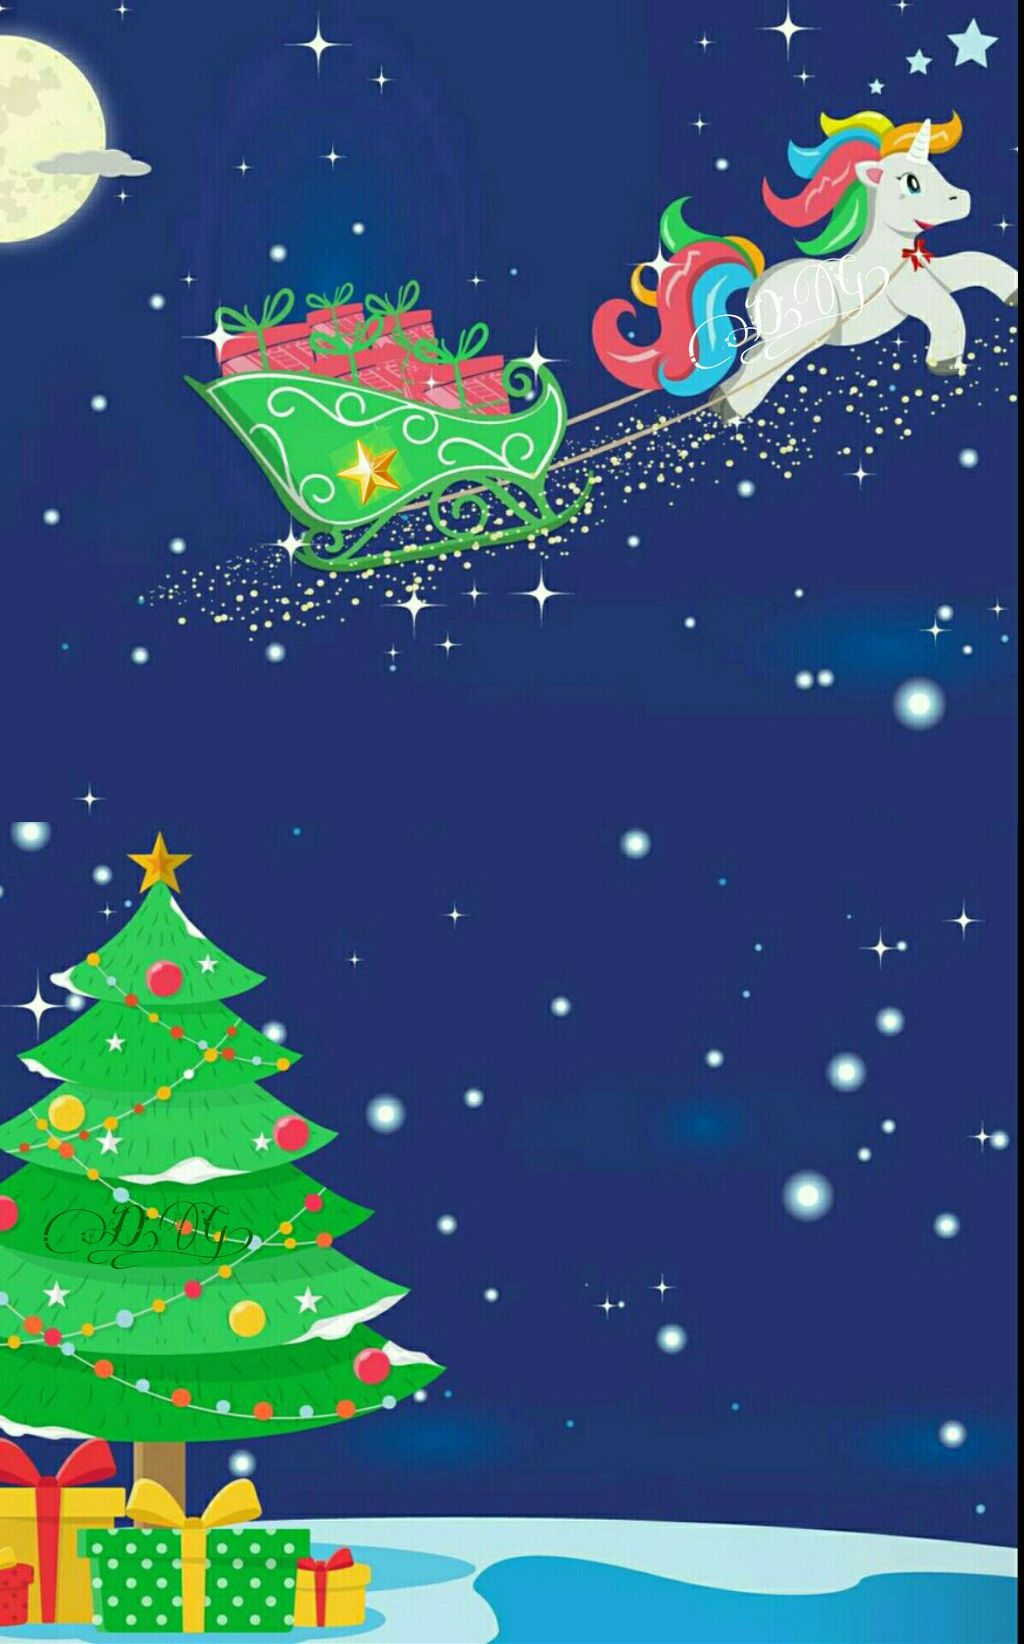 Christmas Background Picsart.Christmas Wallpaper Background Image By Art